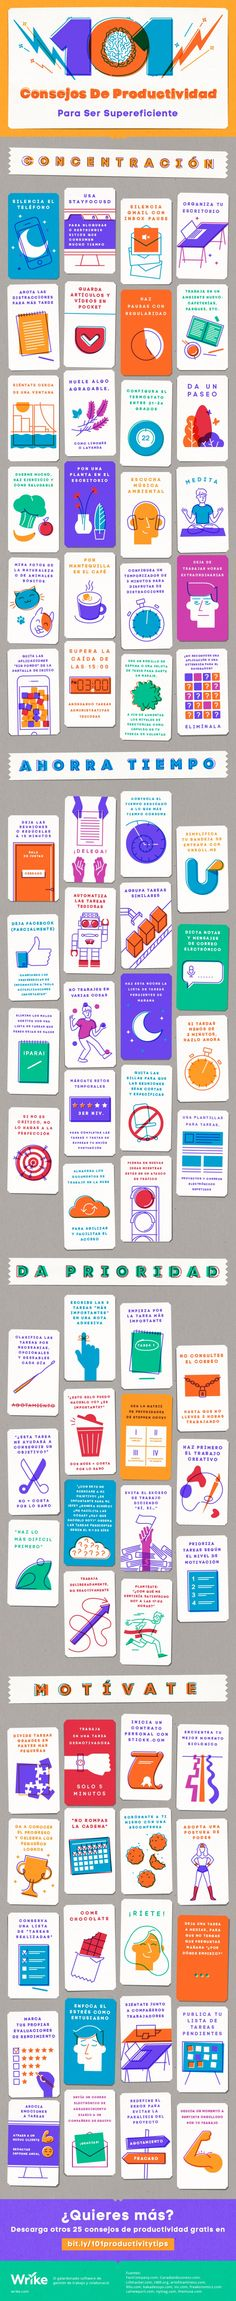 Try these productivity tips and quotes! Find greater success in work and life with these productivity tricks and tools. Plus 5 infographics on time management and daily rituals for success. Work Productivity, Increase Productivity, Time Management Tips, Project Management, Self Development, Saving Tips, Time Saving, Better Life, Self Improvement